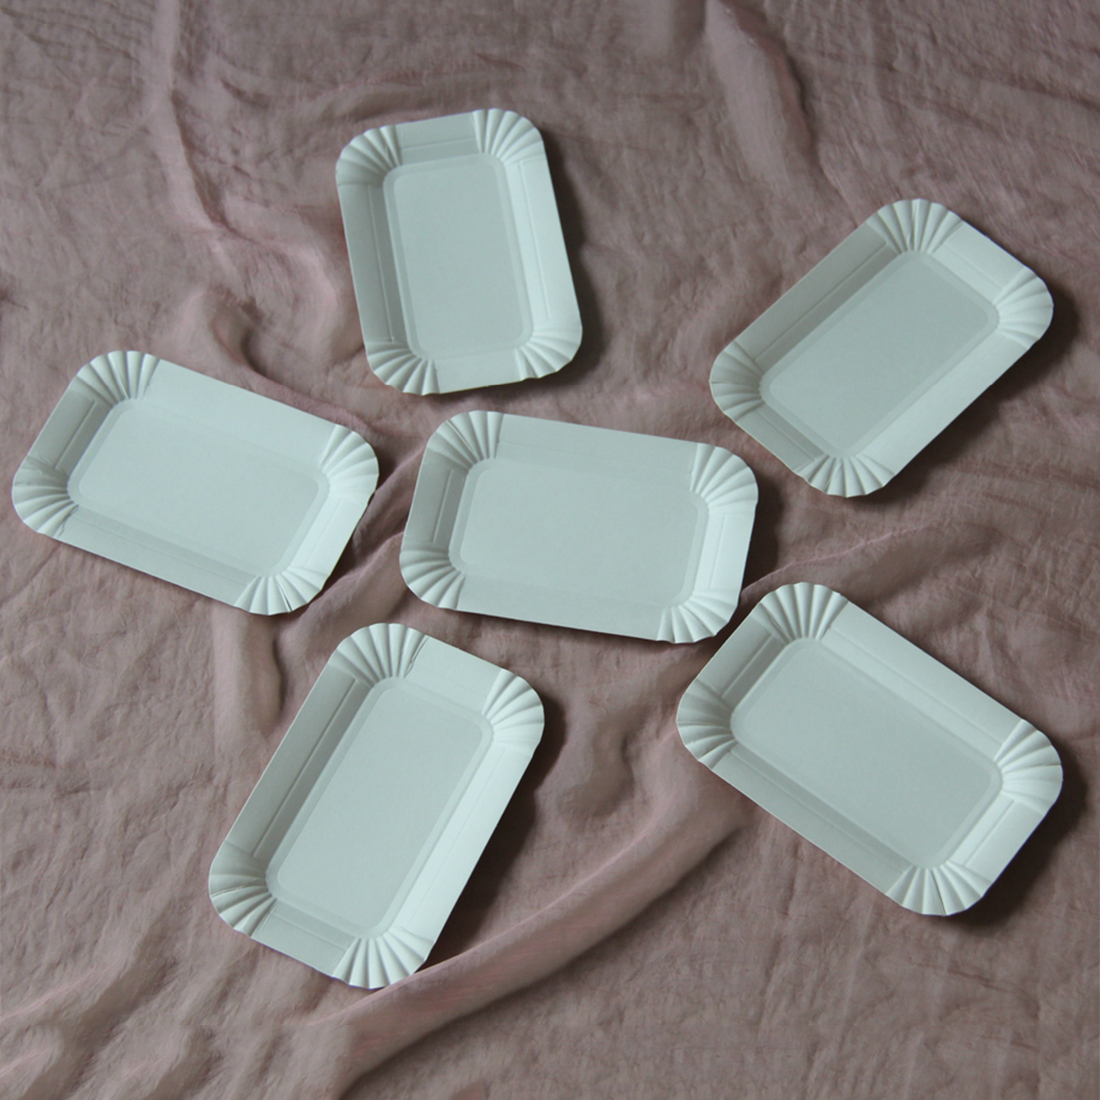 aeProduct.getSubject() & 2018 Wholesale Hot Selling Disposable Paper Plates Rectangular ...